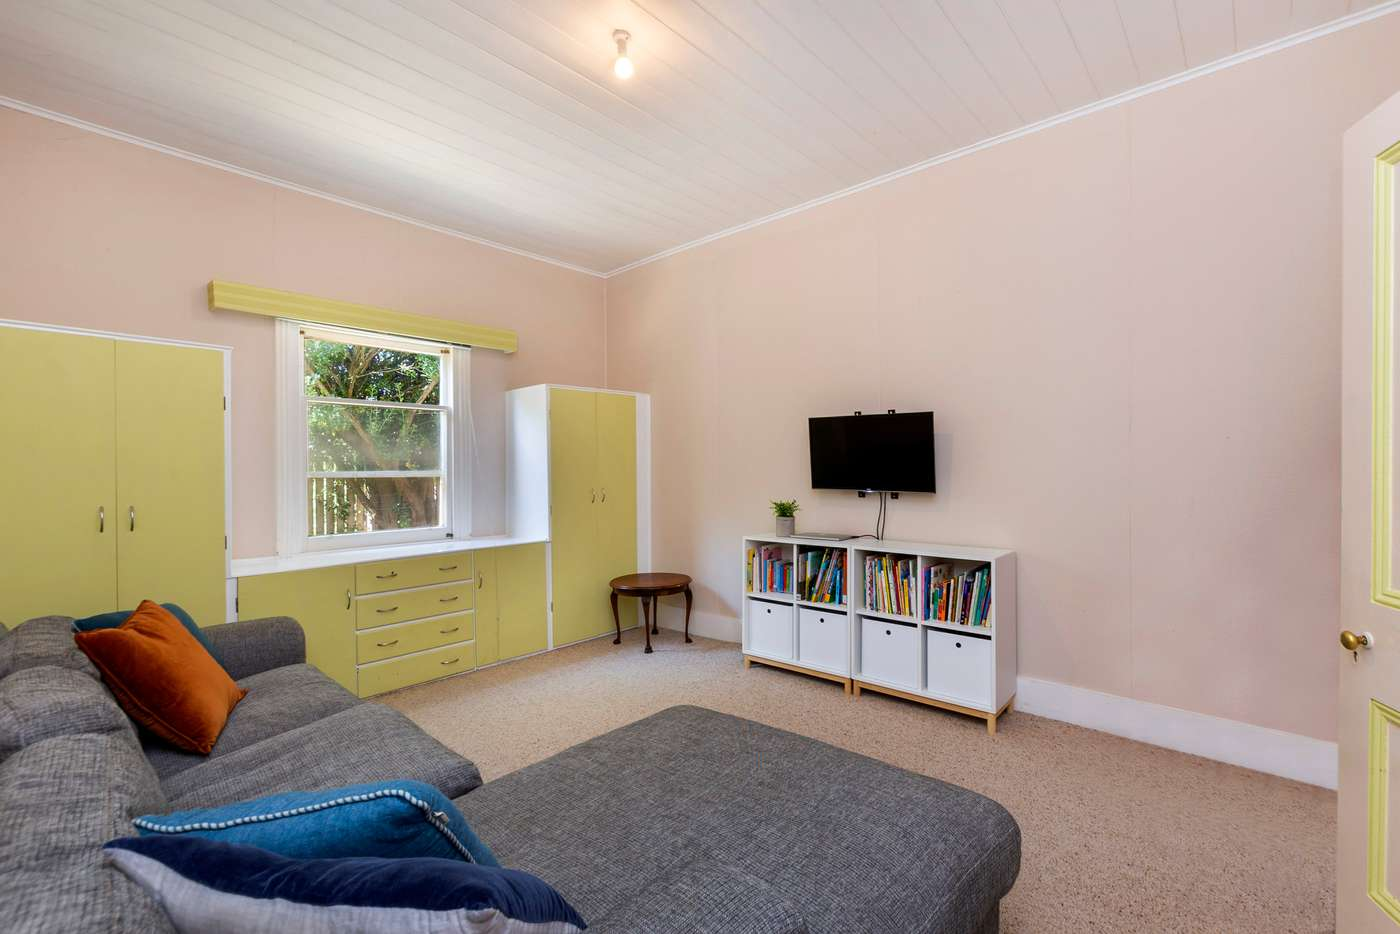 Sixth view of Homely house listing, 16 Laguna Court, Portland VIC 3305